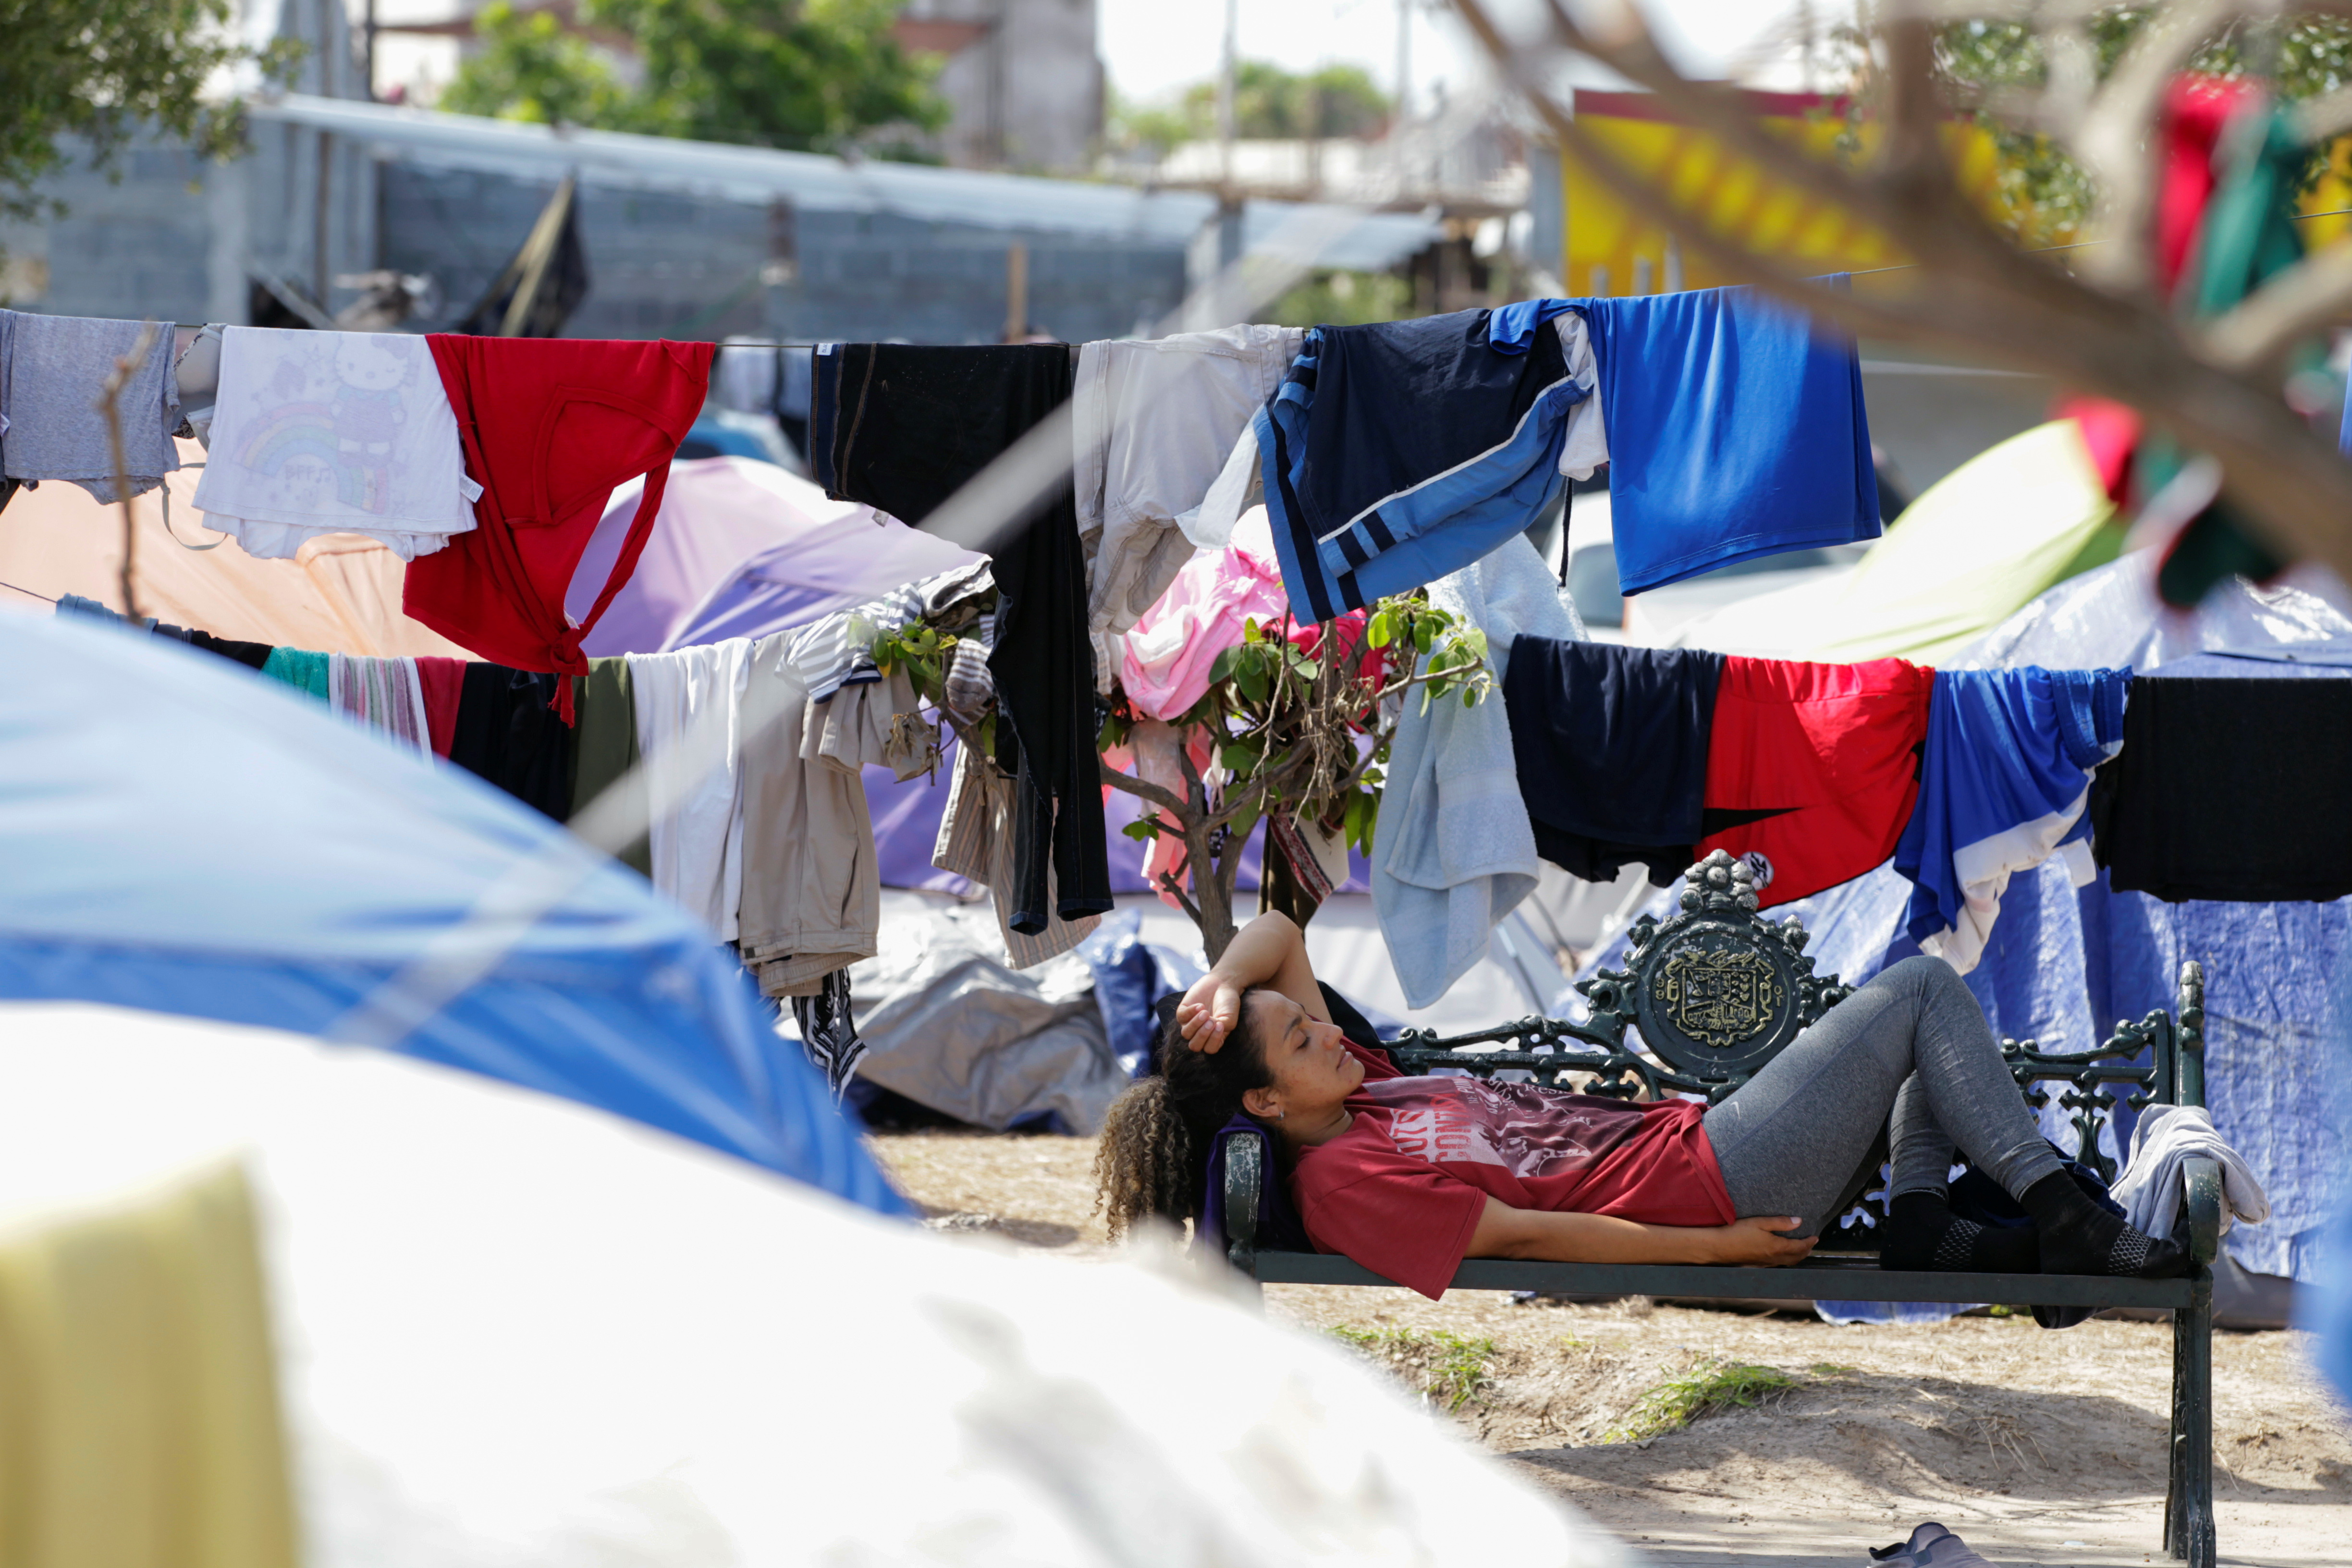 An asylum-seeking migrant, who was apprehended and returned to Mexico under Title 42 after crossing the border from Mexico into the U.S., rests in a public square where hundreds of migrants live in tents, in Reynosa, Mexico June 9, 2021. Picture taken June 9, 2021. REUTERS/Daniel Becerril